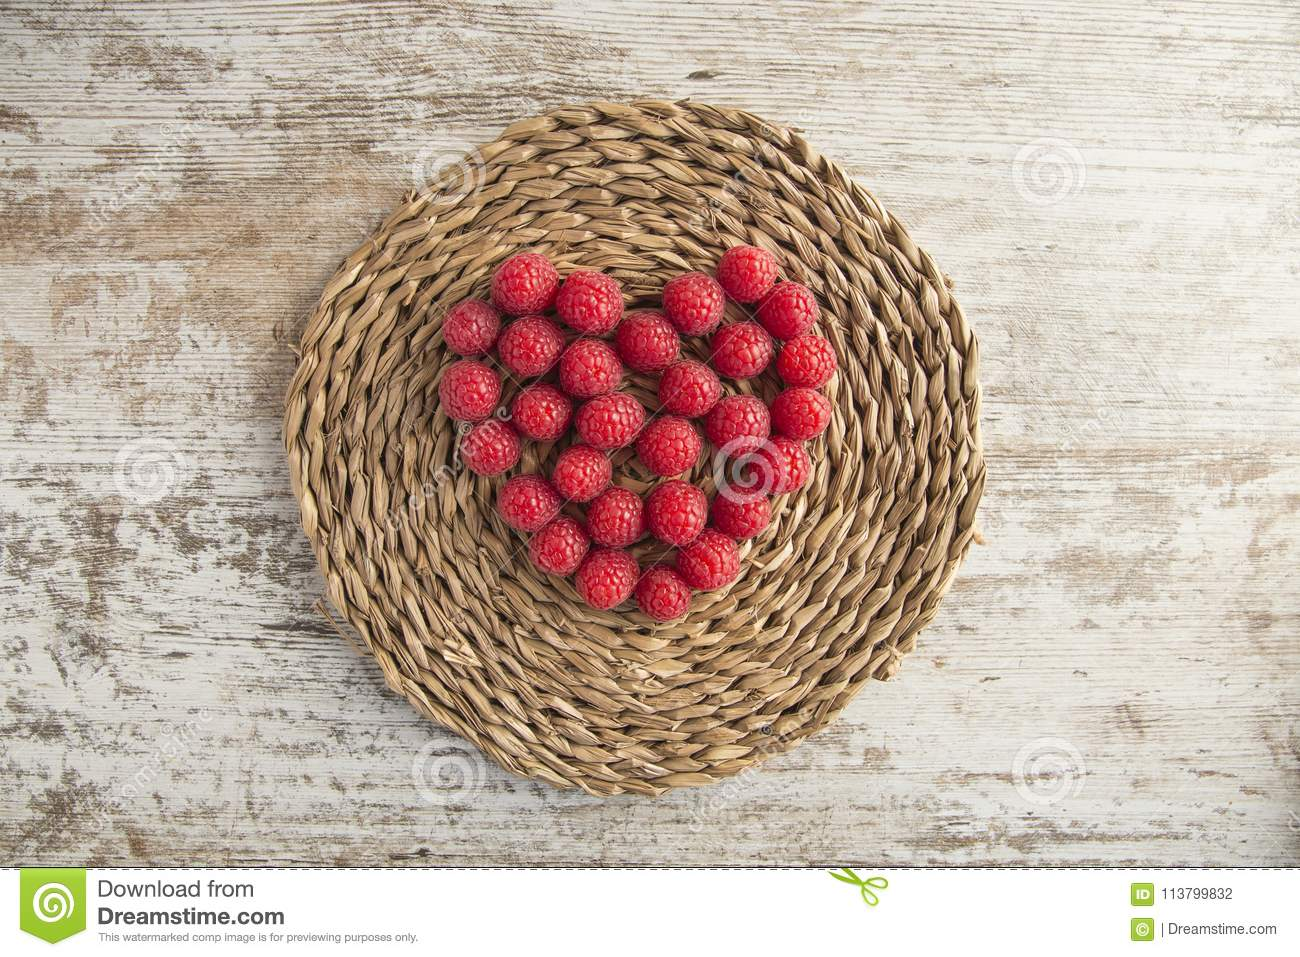 Heart made of raspberries on rustic background